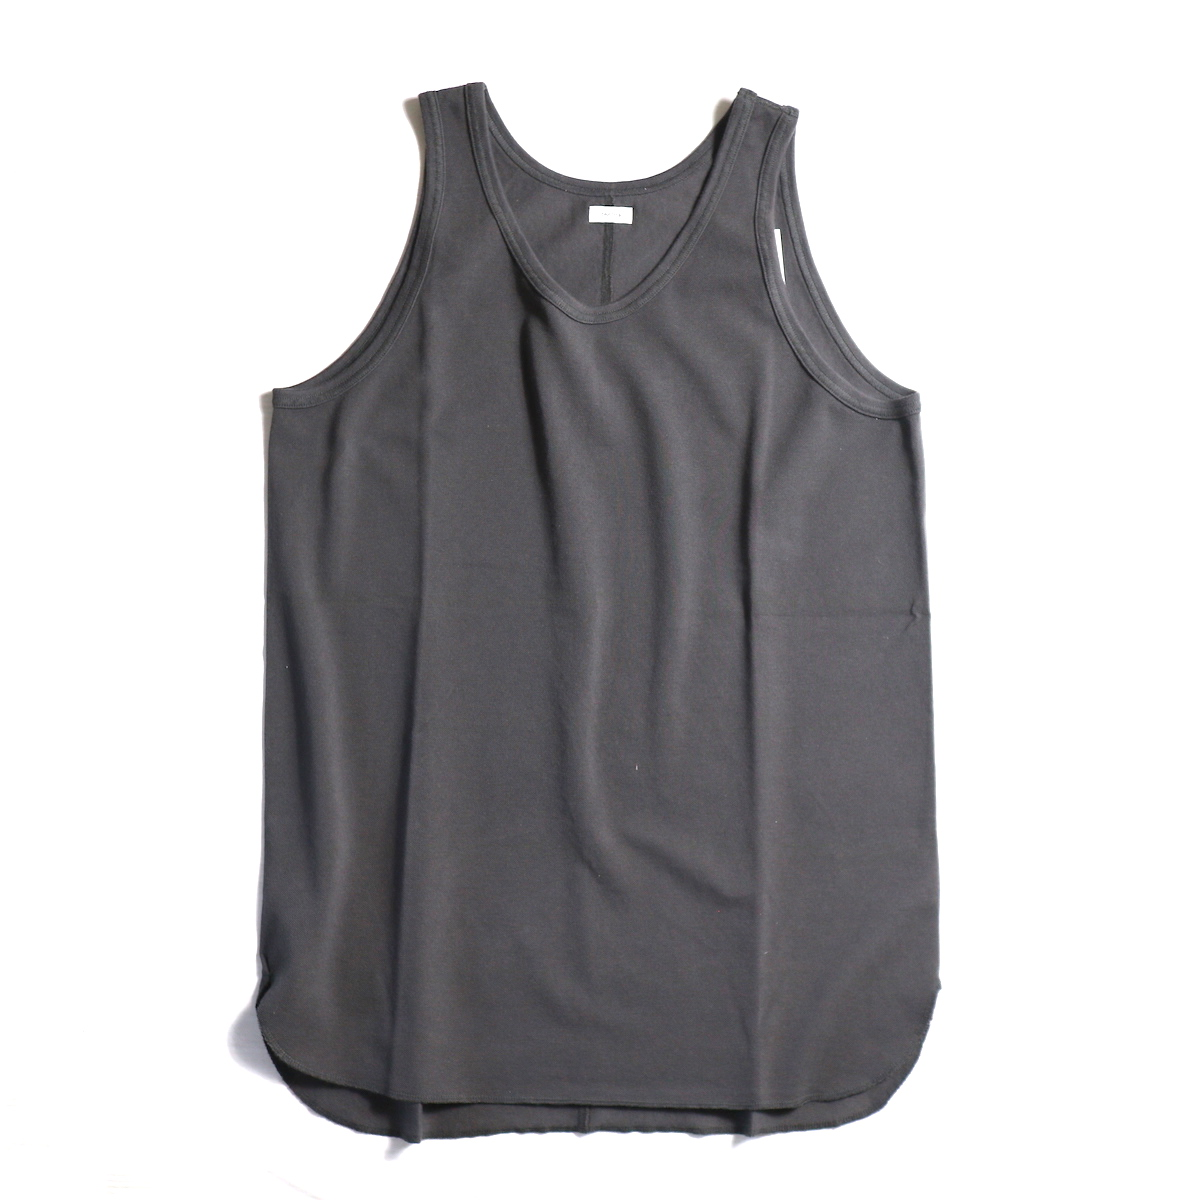 blurhms / Long Tank Top -Ash Charcoal